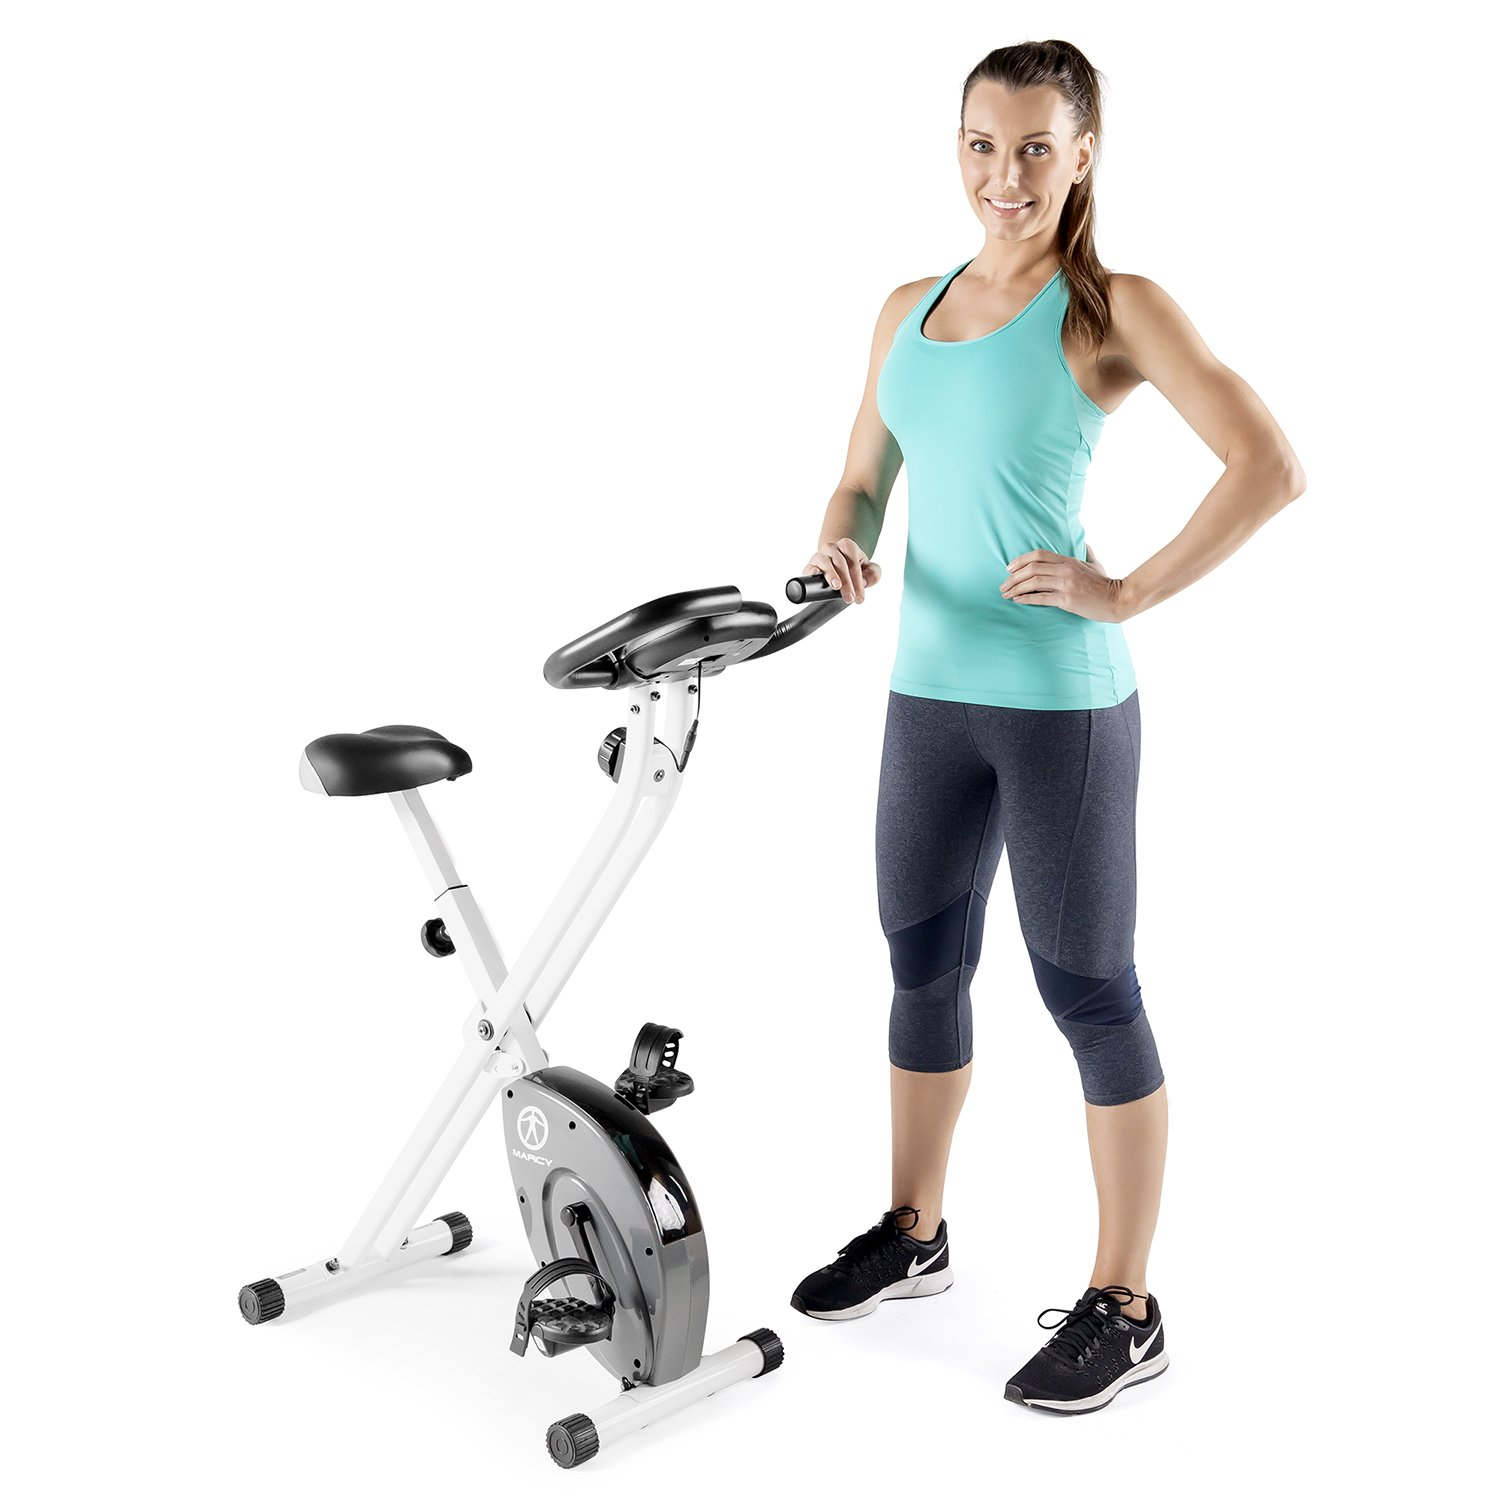 Marcy Foldable Exercise Adjustable Resistance